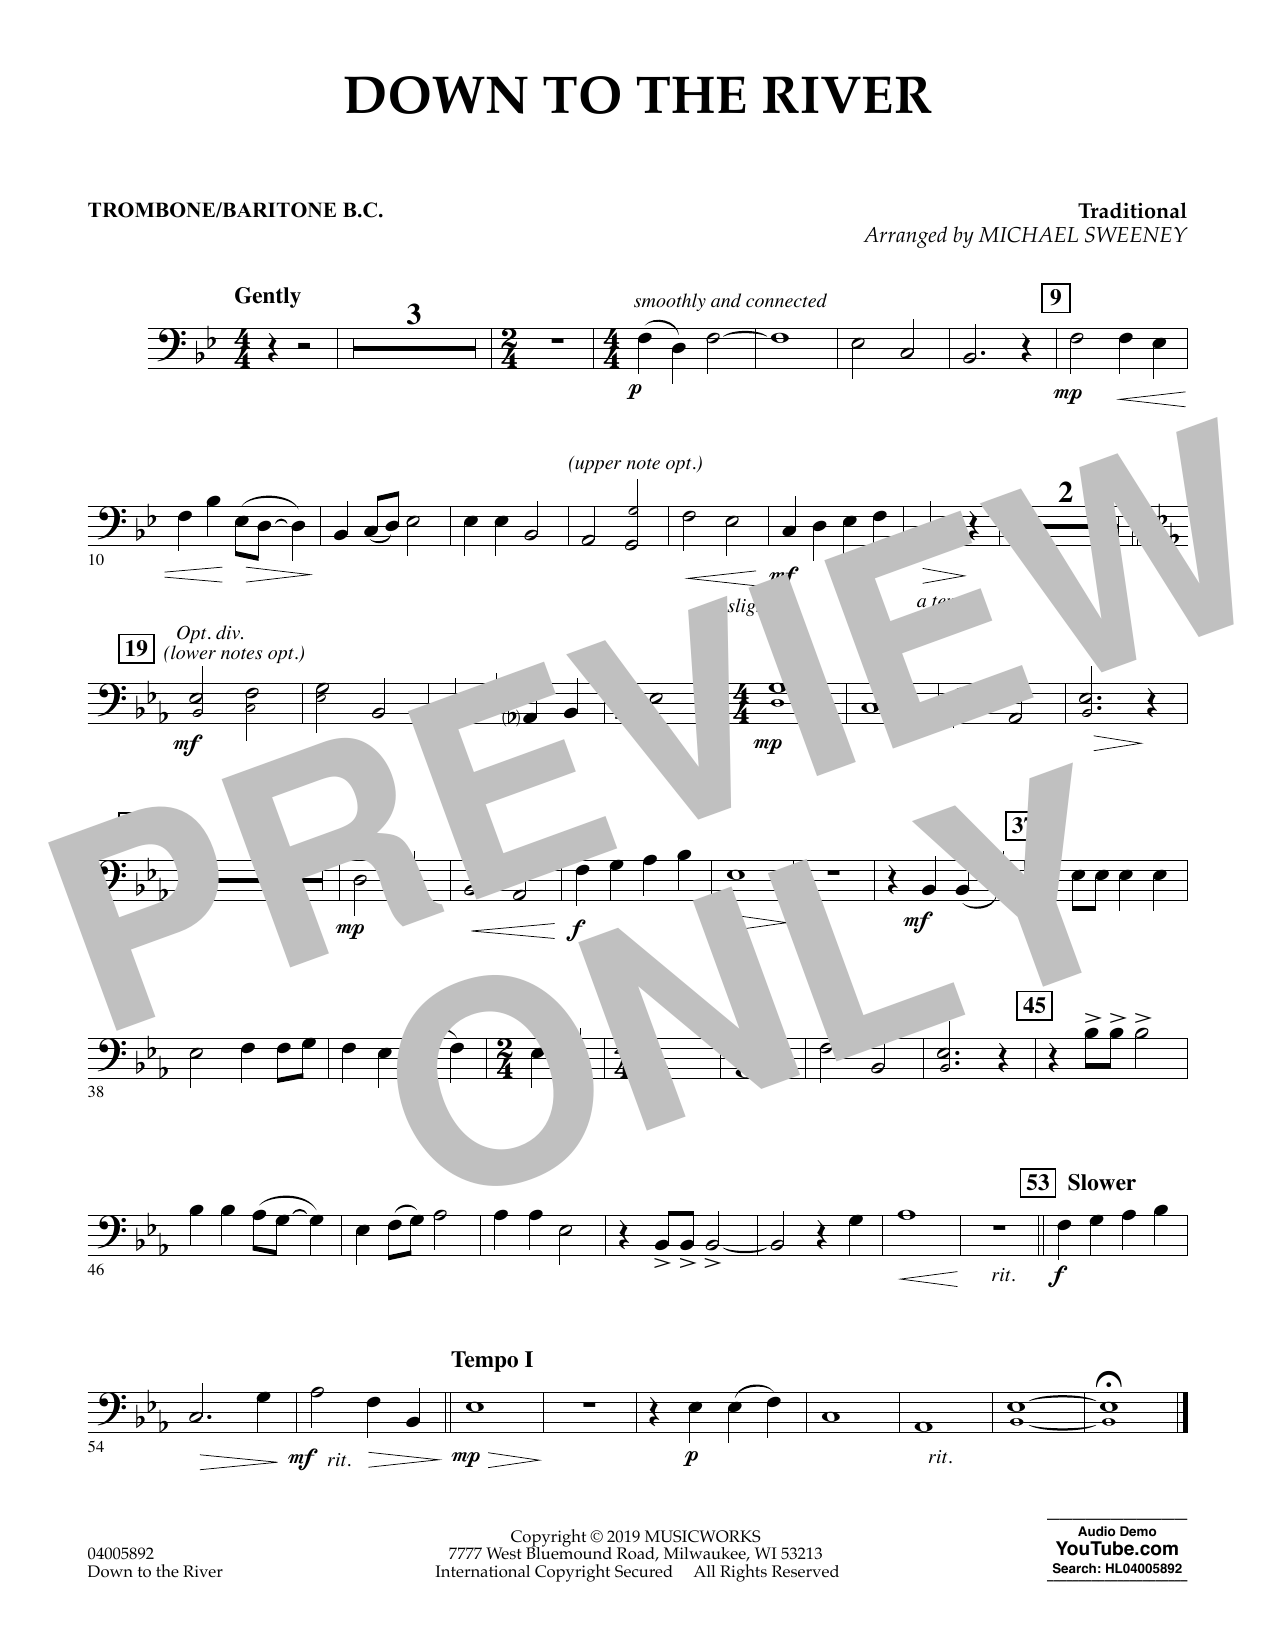 Michael Sweeney Down to the River - Trombone/Baritone B.C. sheet music preview music notes and score for Concert Band including 1 page(s)